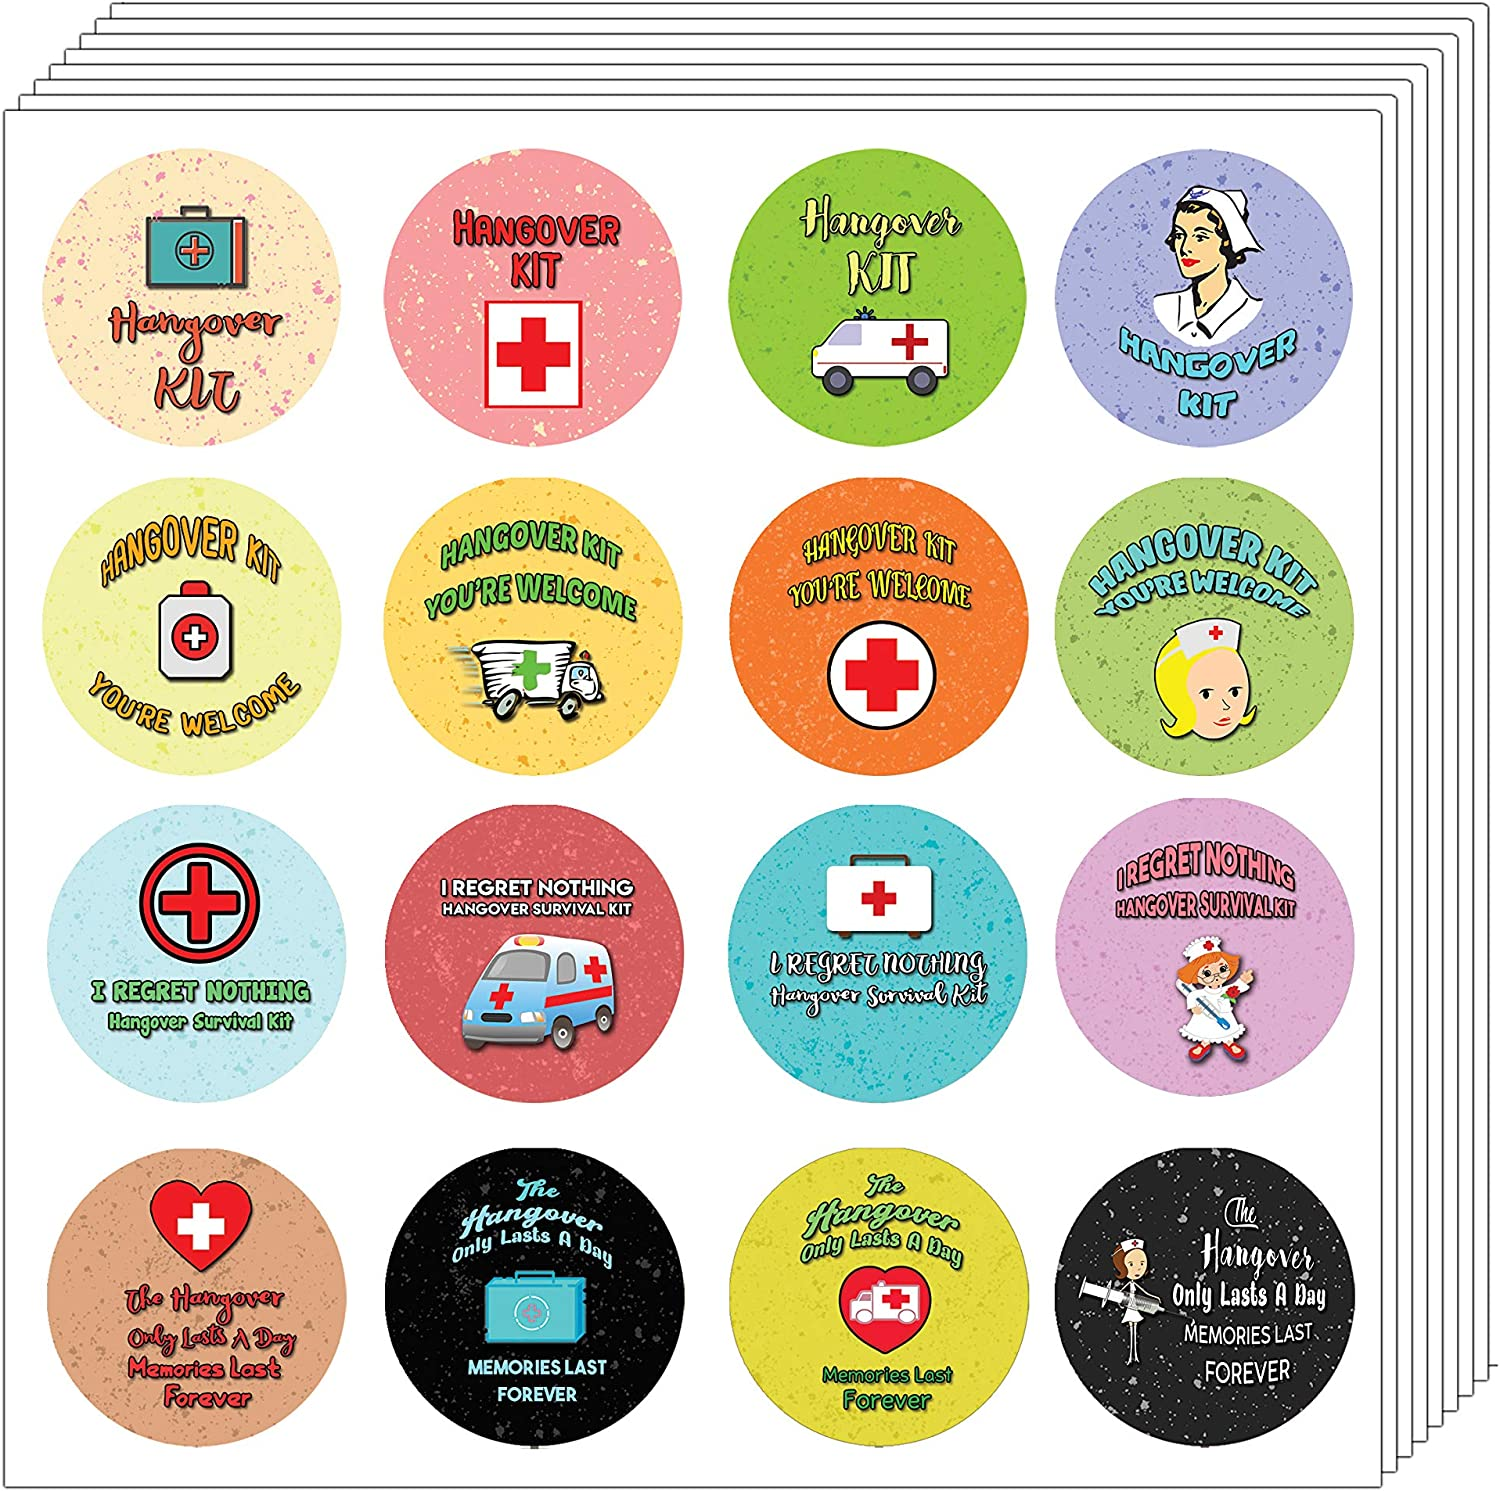 Creanoso Hangover Kit Stickers - (5 Sheets) - Round Circle Survival Recovery Bachelorette Party - Favor Bag Gift Label - Envelope Seal Package Sticker